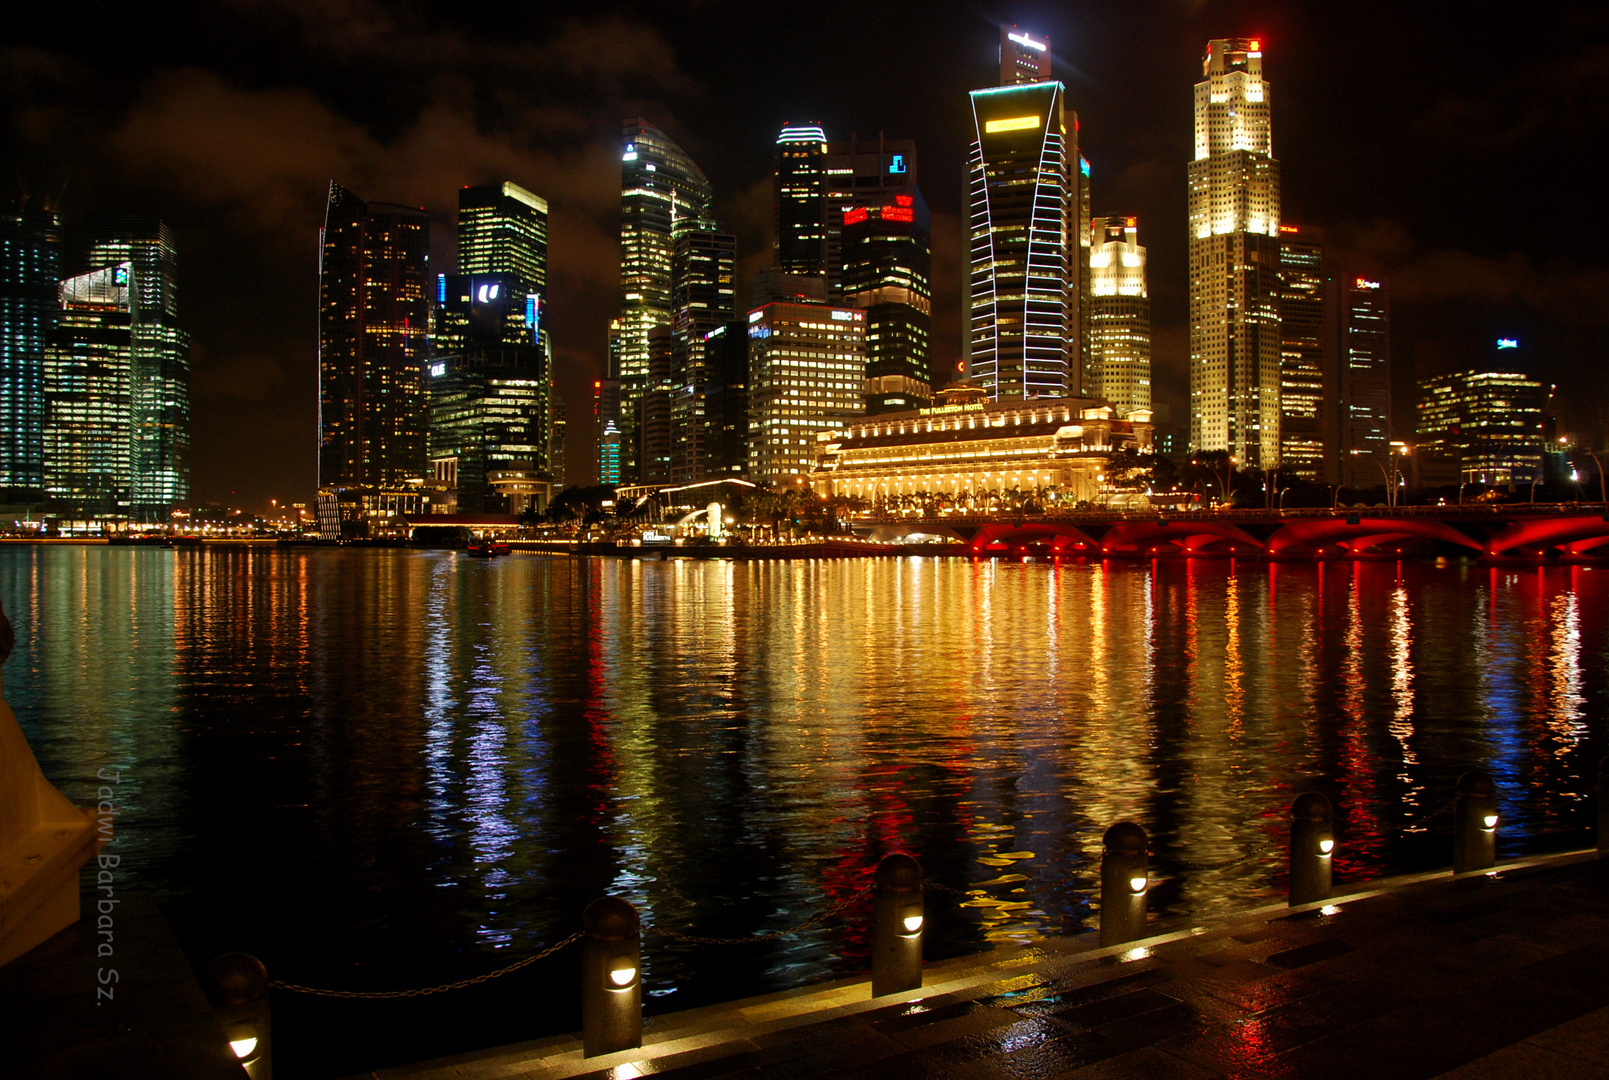 Singapore by night I